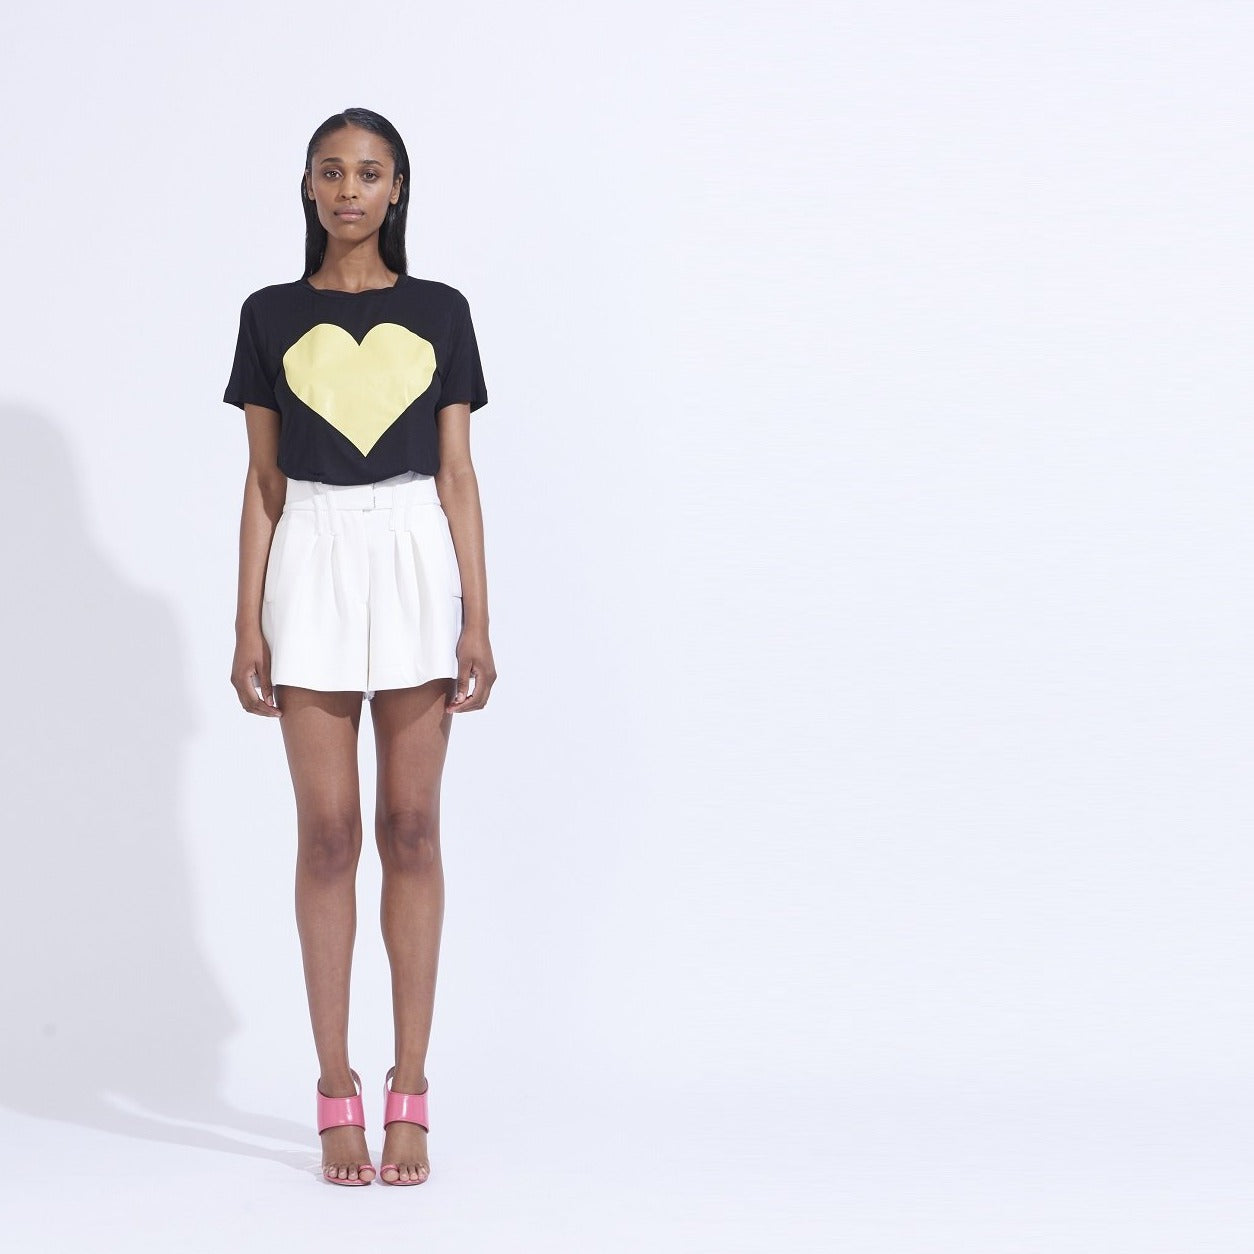 YELLOW HEART TEE